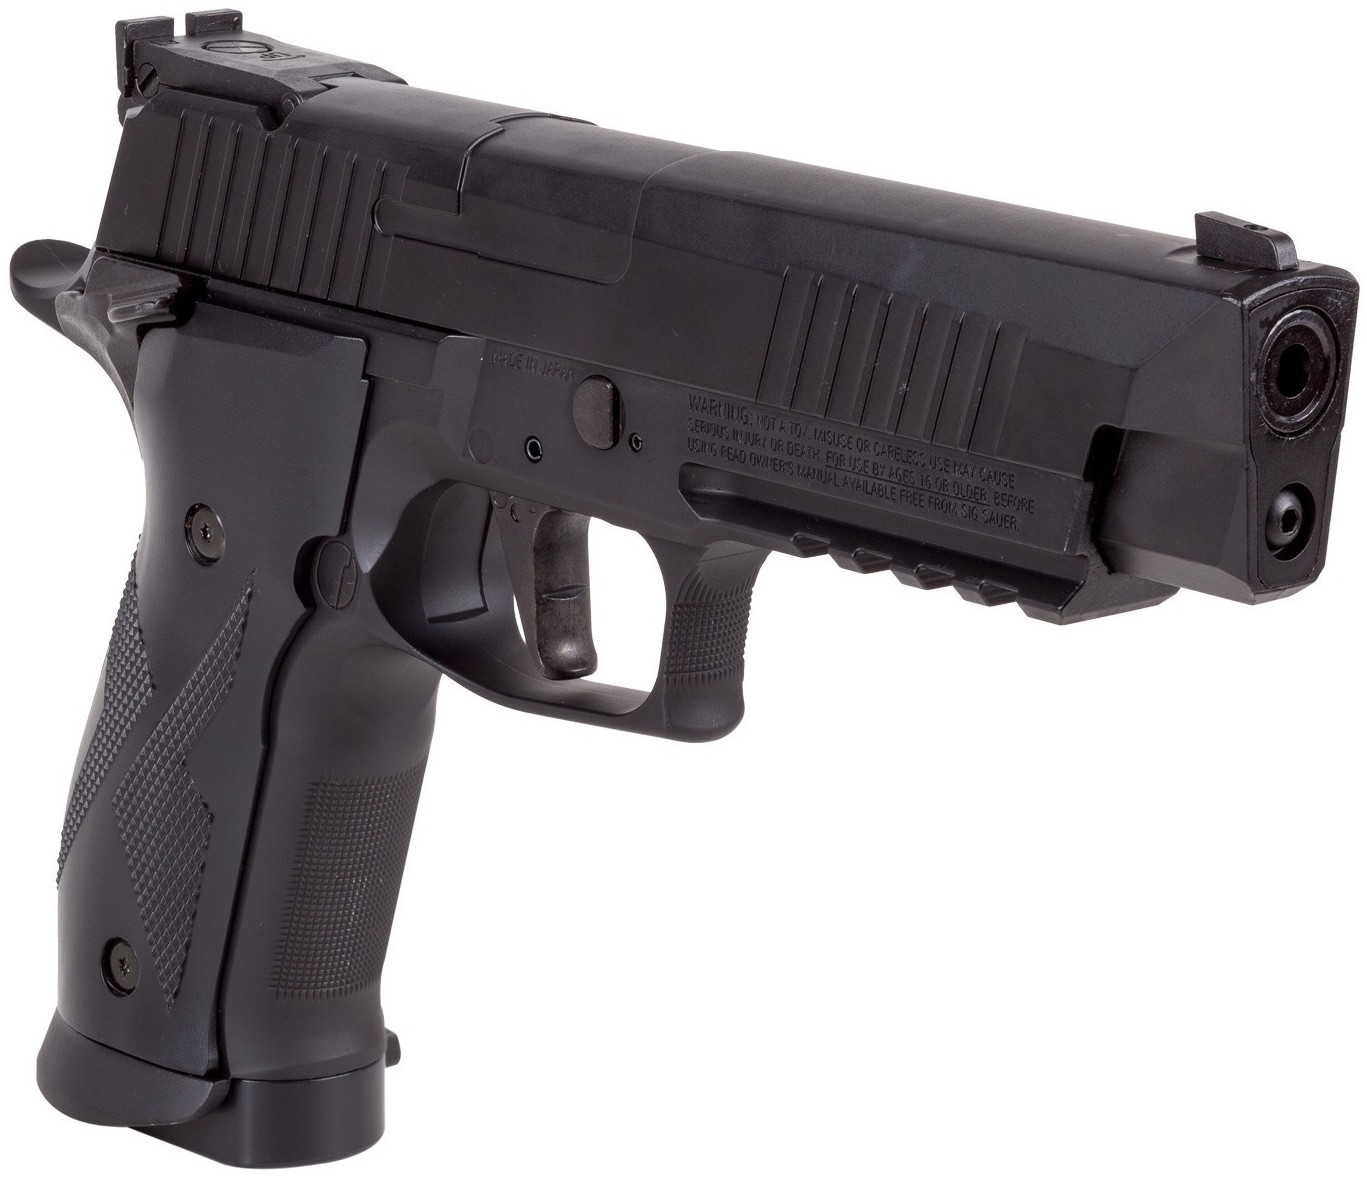 Sig Sauer X-Five ASP Right Side Angle.jpg